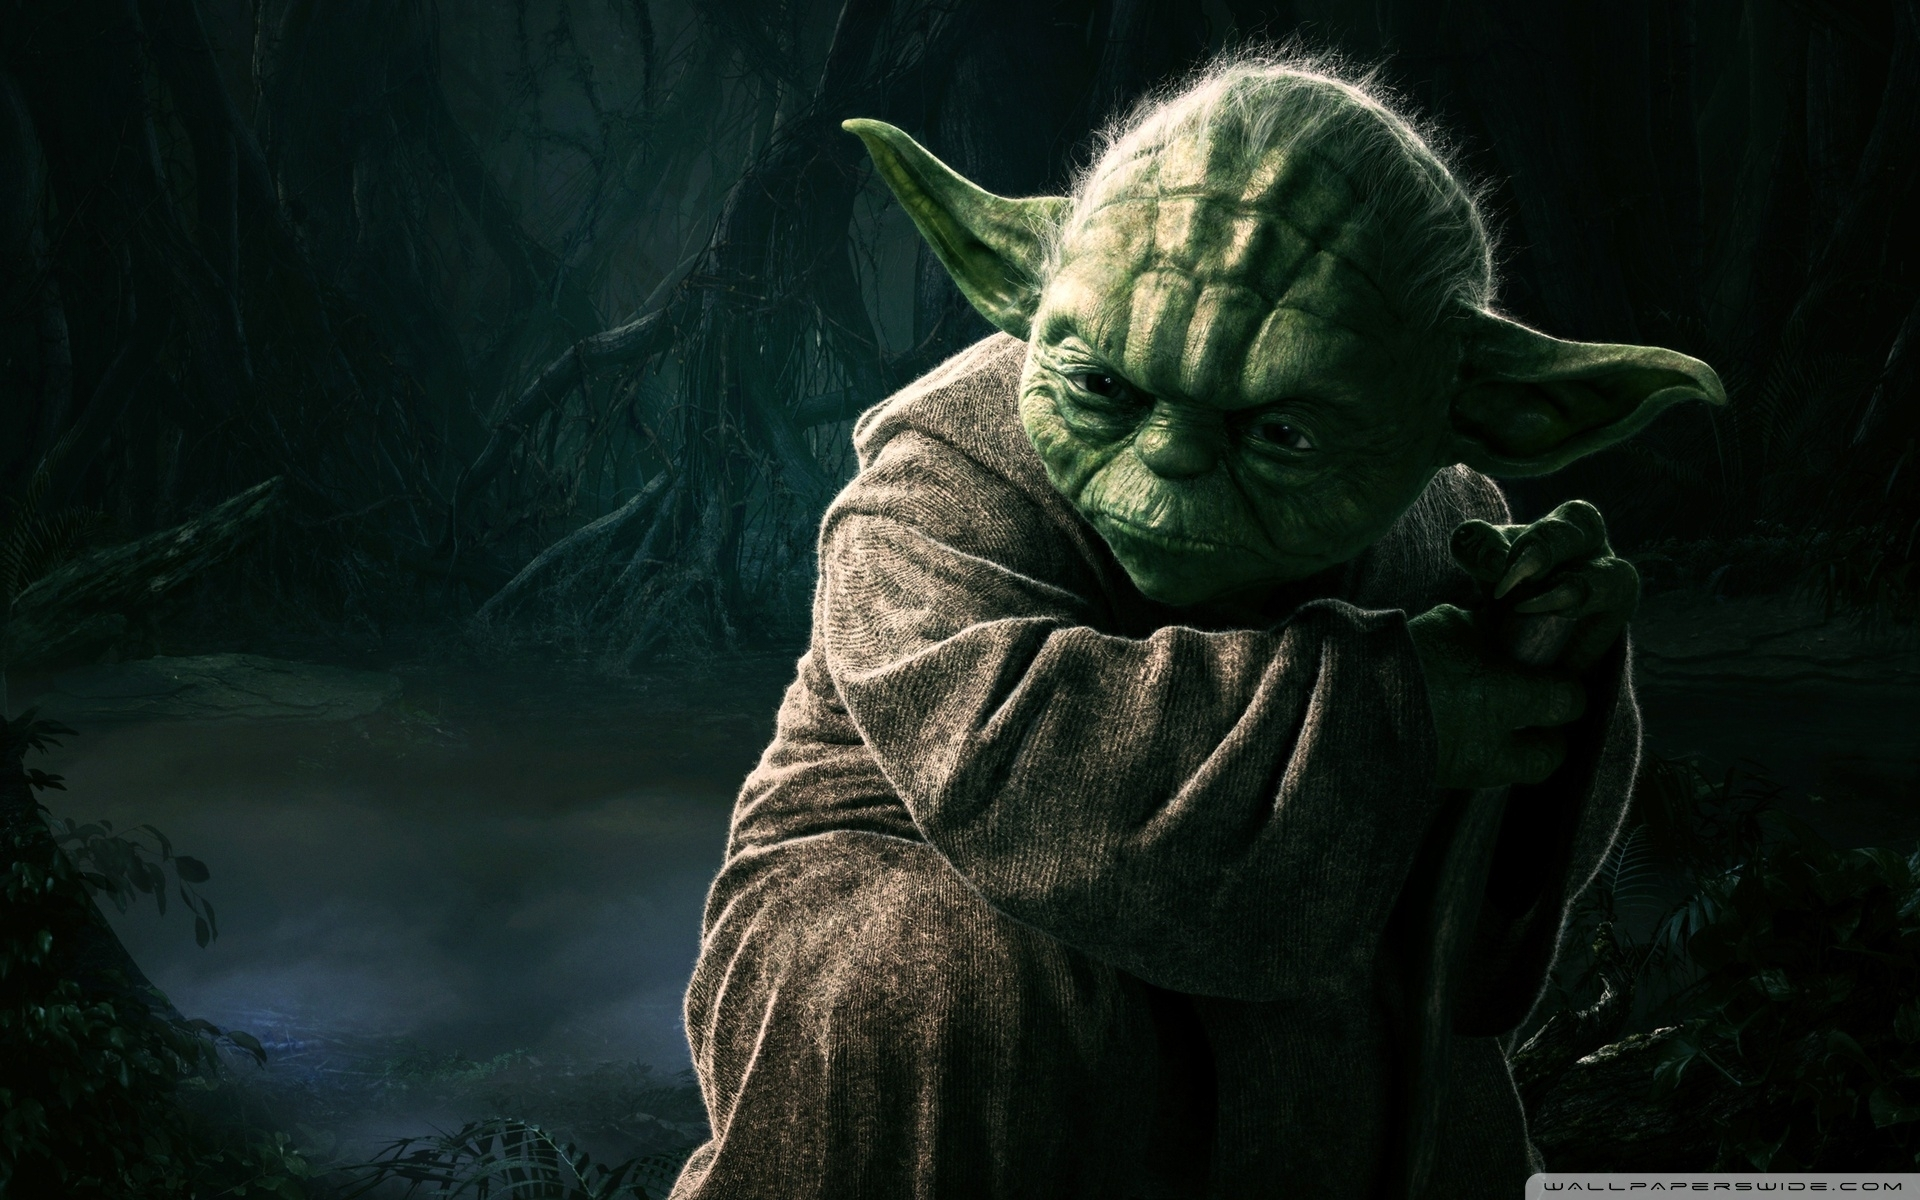 master yoda, star wars ❤ 4k hd desktop wallpaper for 4k ultra hd tv